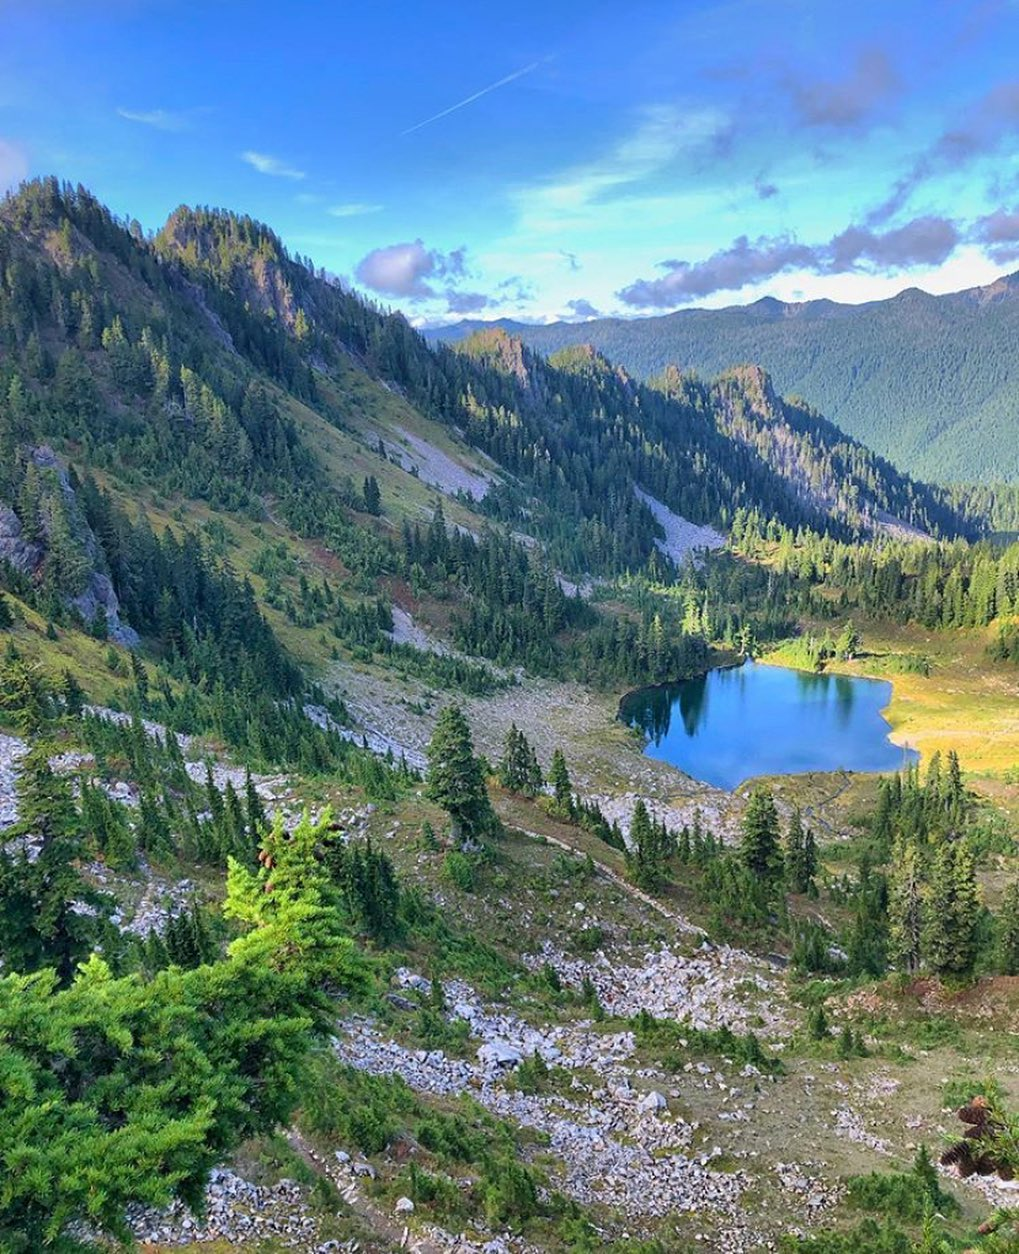 Seven Lakes Basin from the High Divide Loop, Olympic National Park, Washington